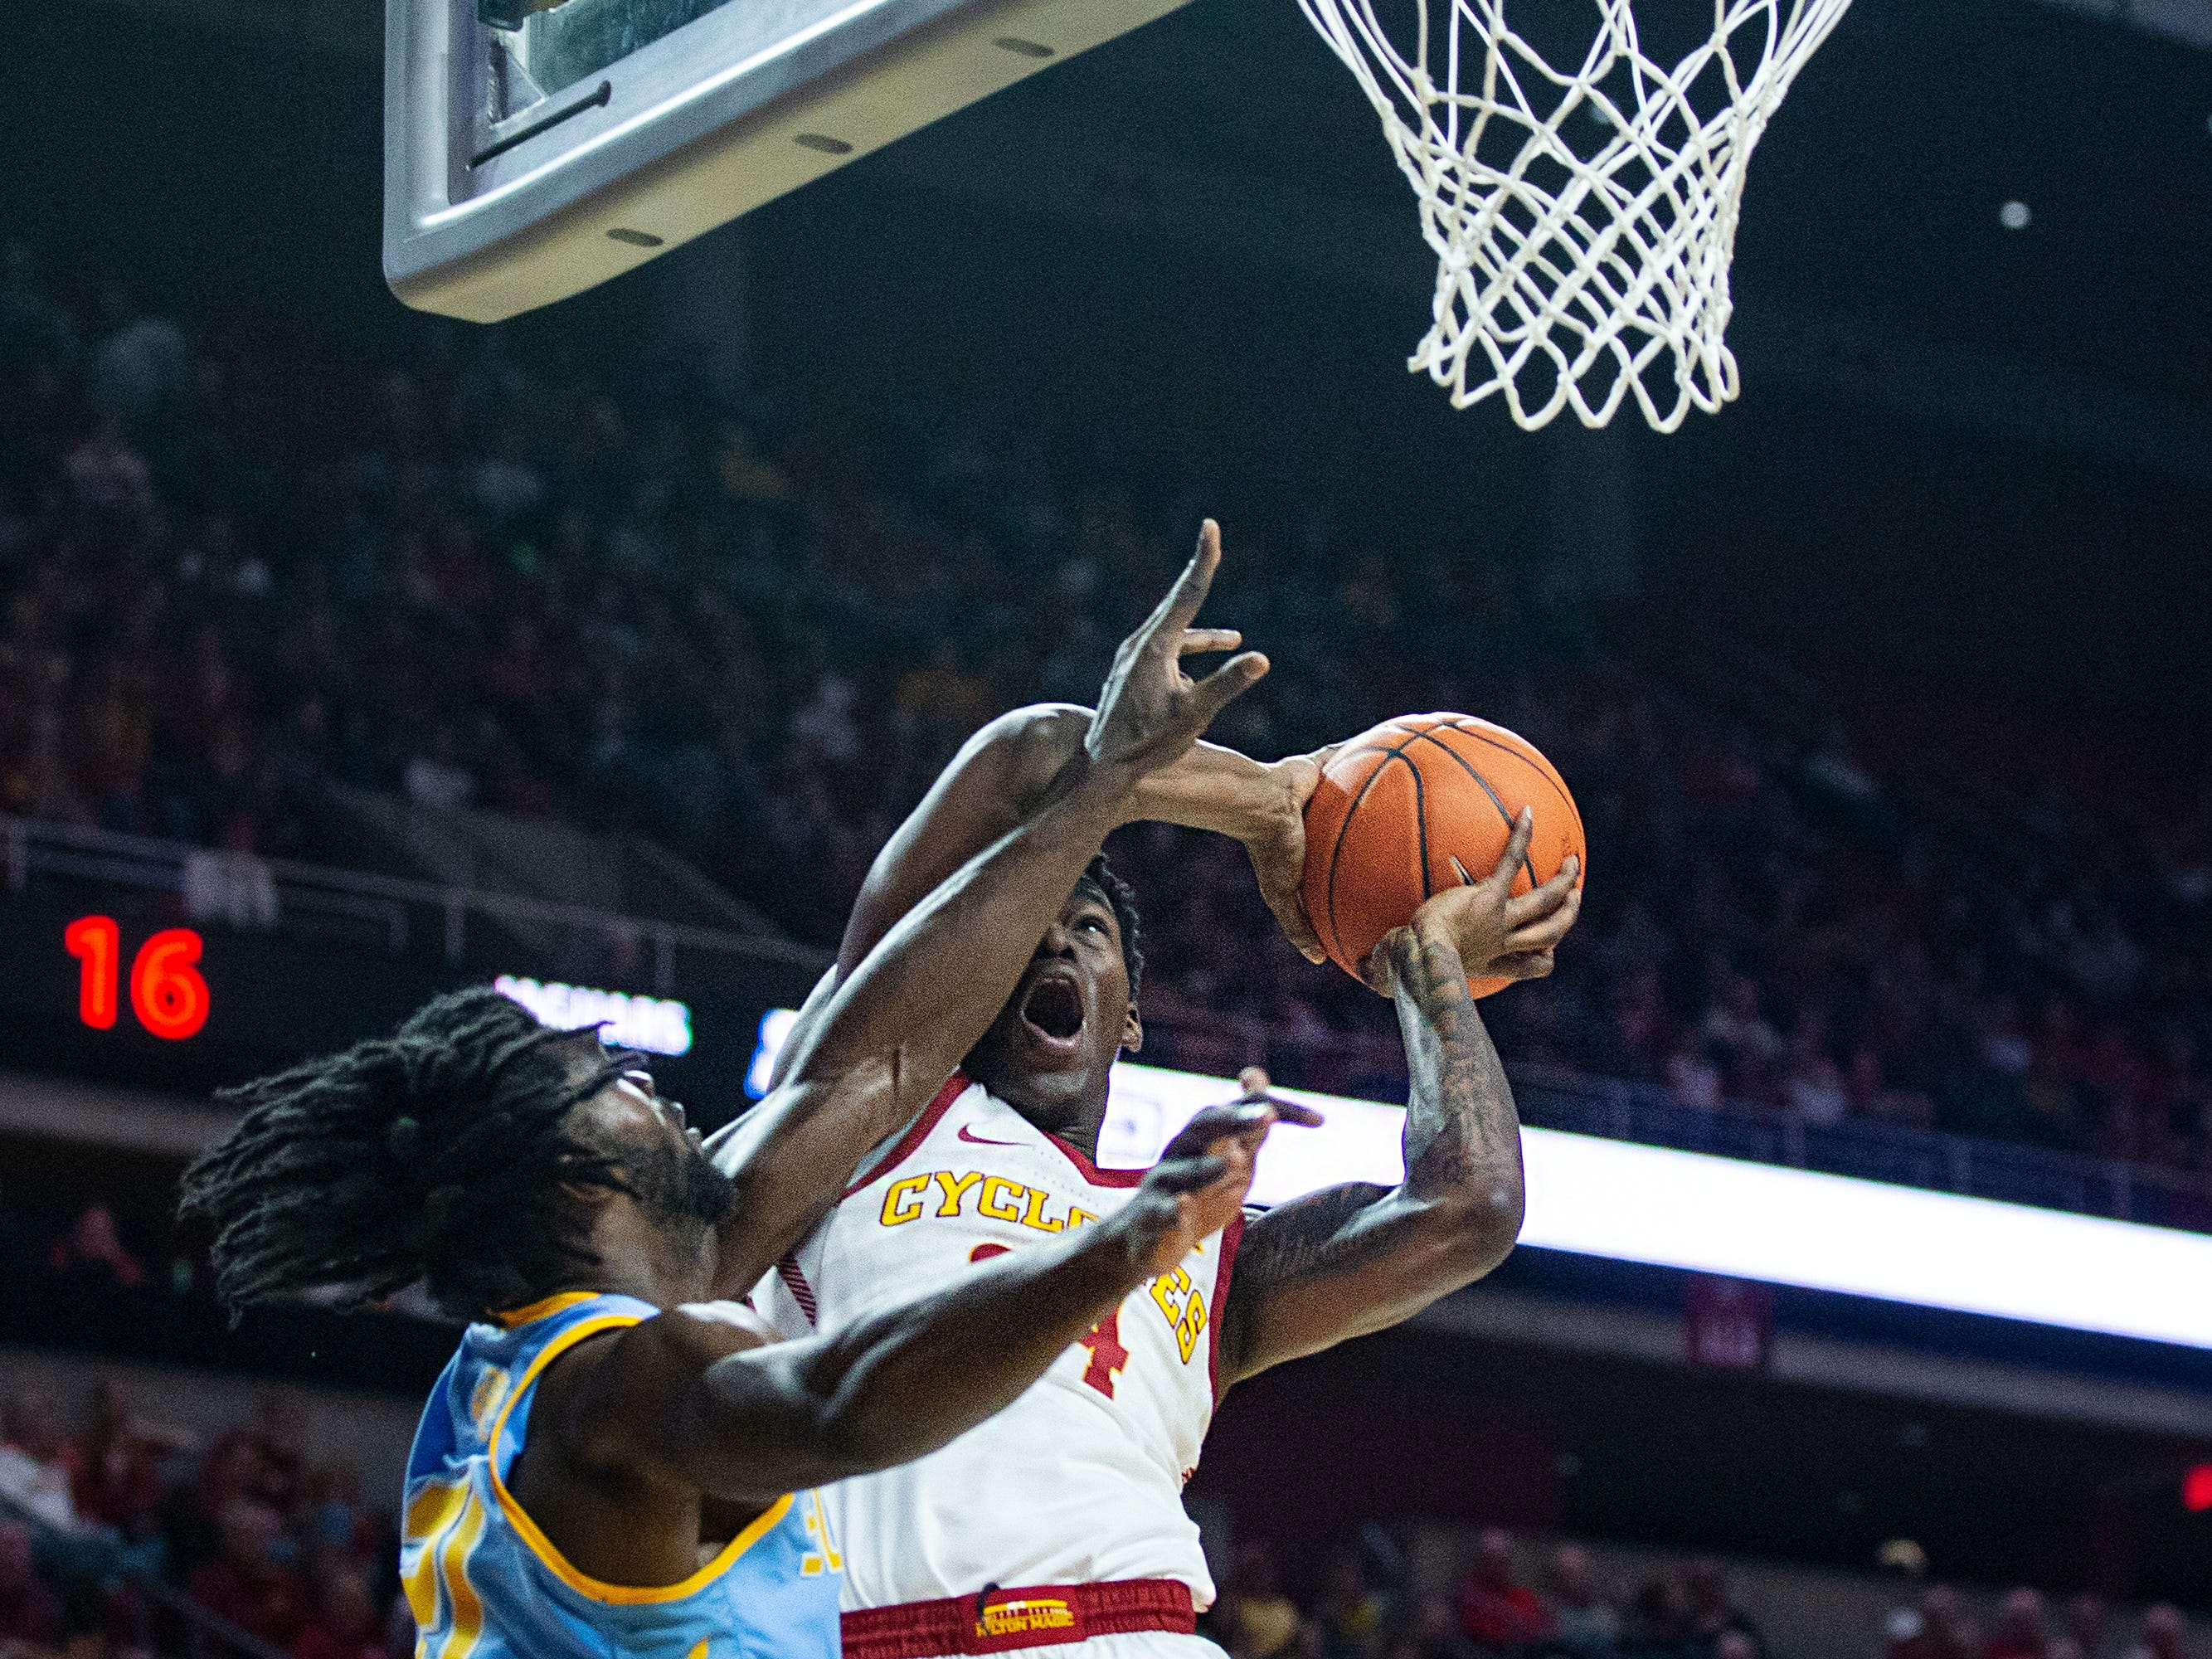 Iowa State's Terrence Lewis is fouled while he tries to shoot during the Iowa State men's basketball game against Southern on Sunday, Dec. 9, 2018, in Hilton Coliseum.